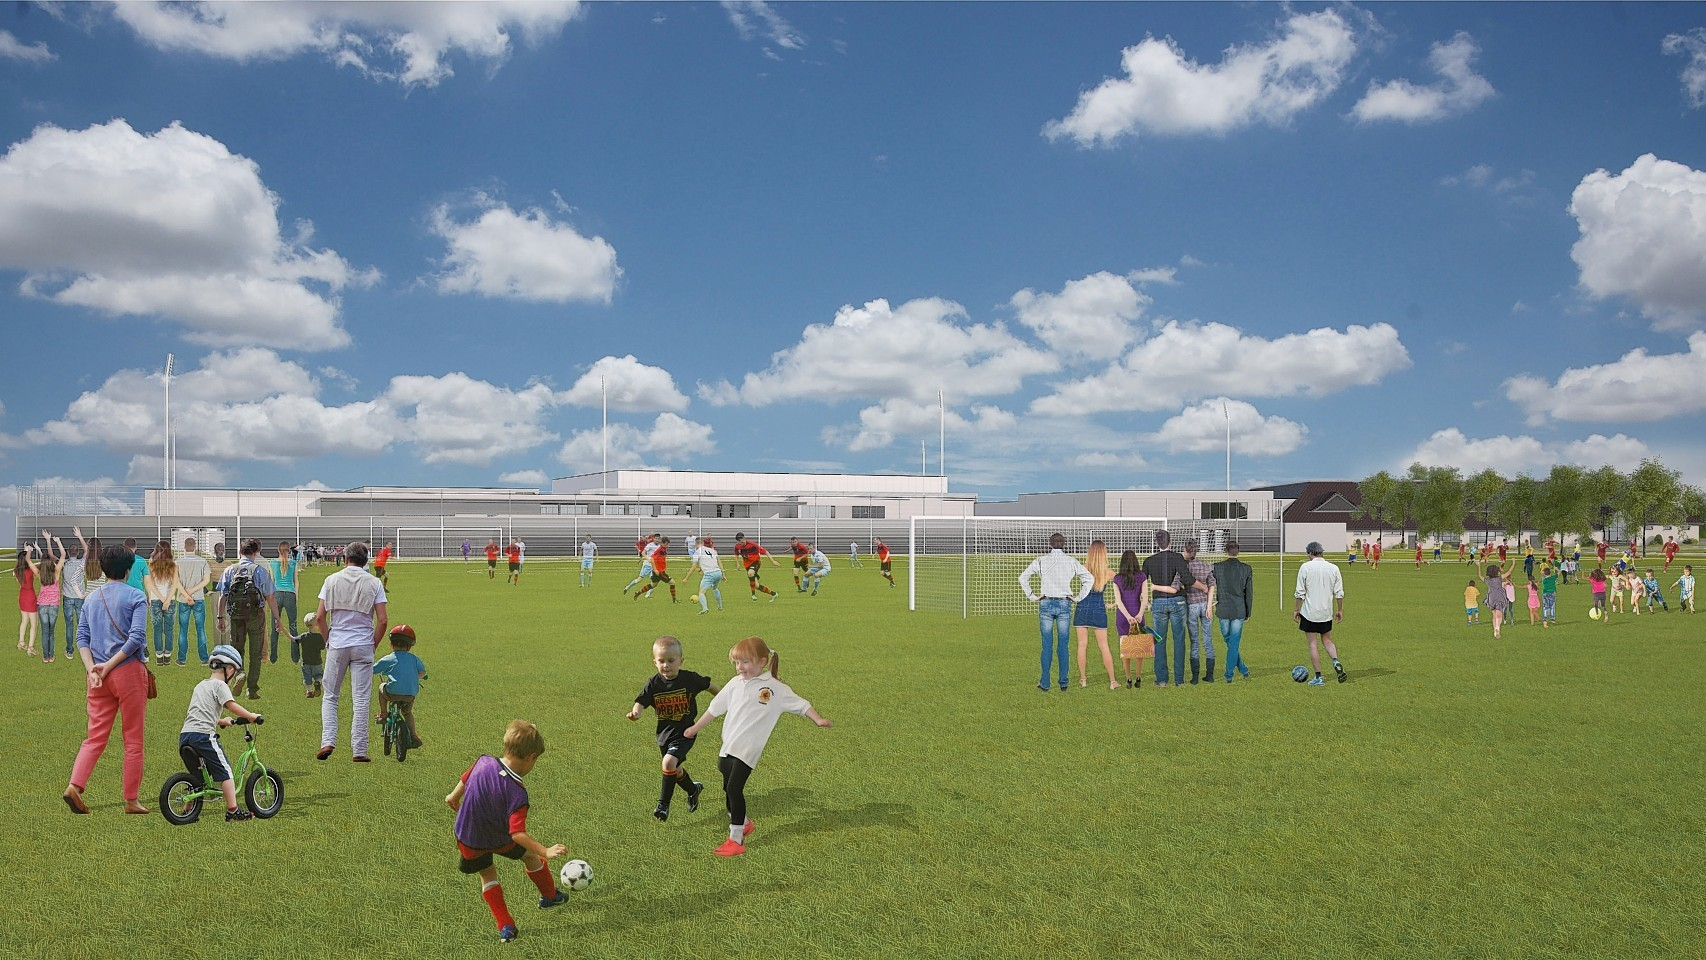 Outdoor facilities at the proposed Garioch Sports and Community Centre